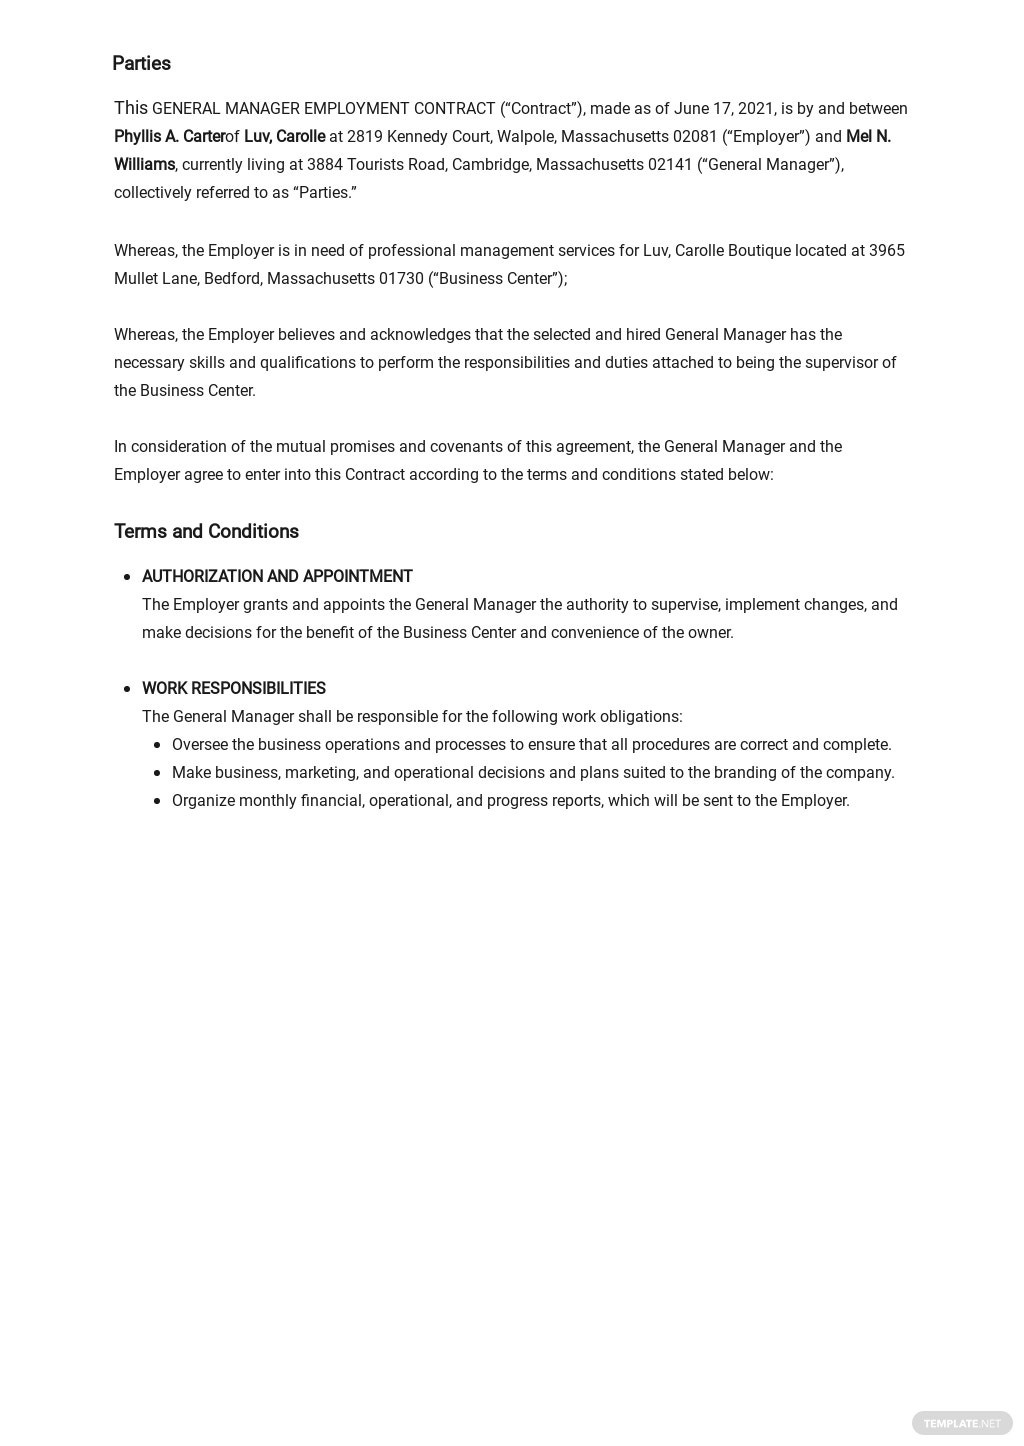 General Manager Employment Contract Template 1.jpe